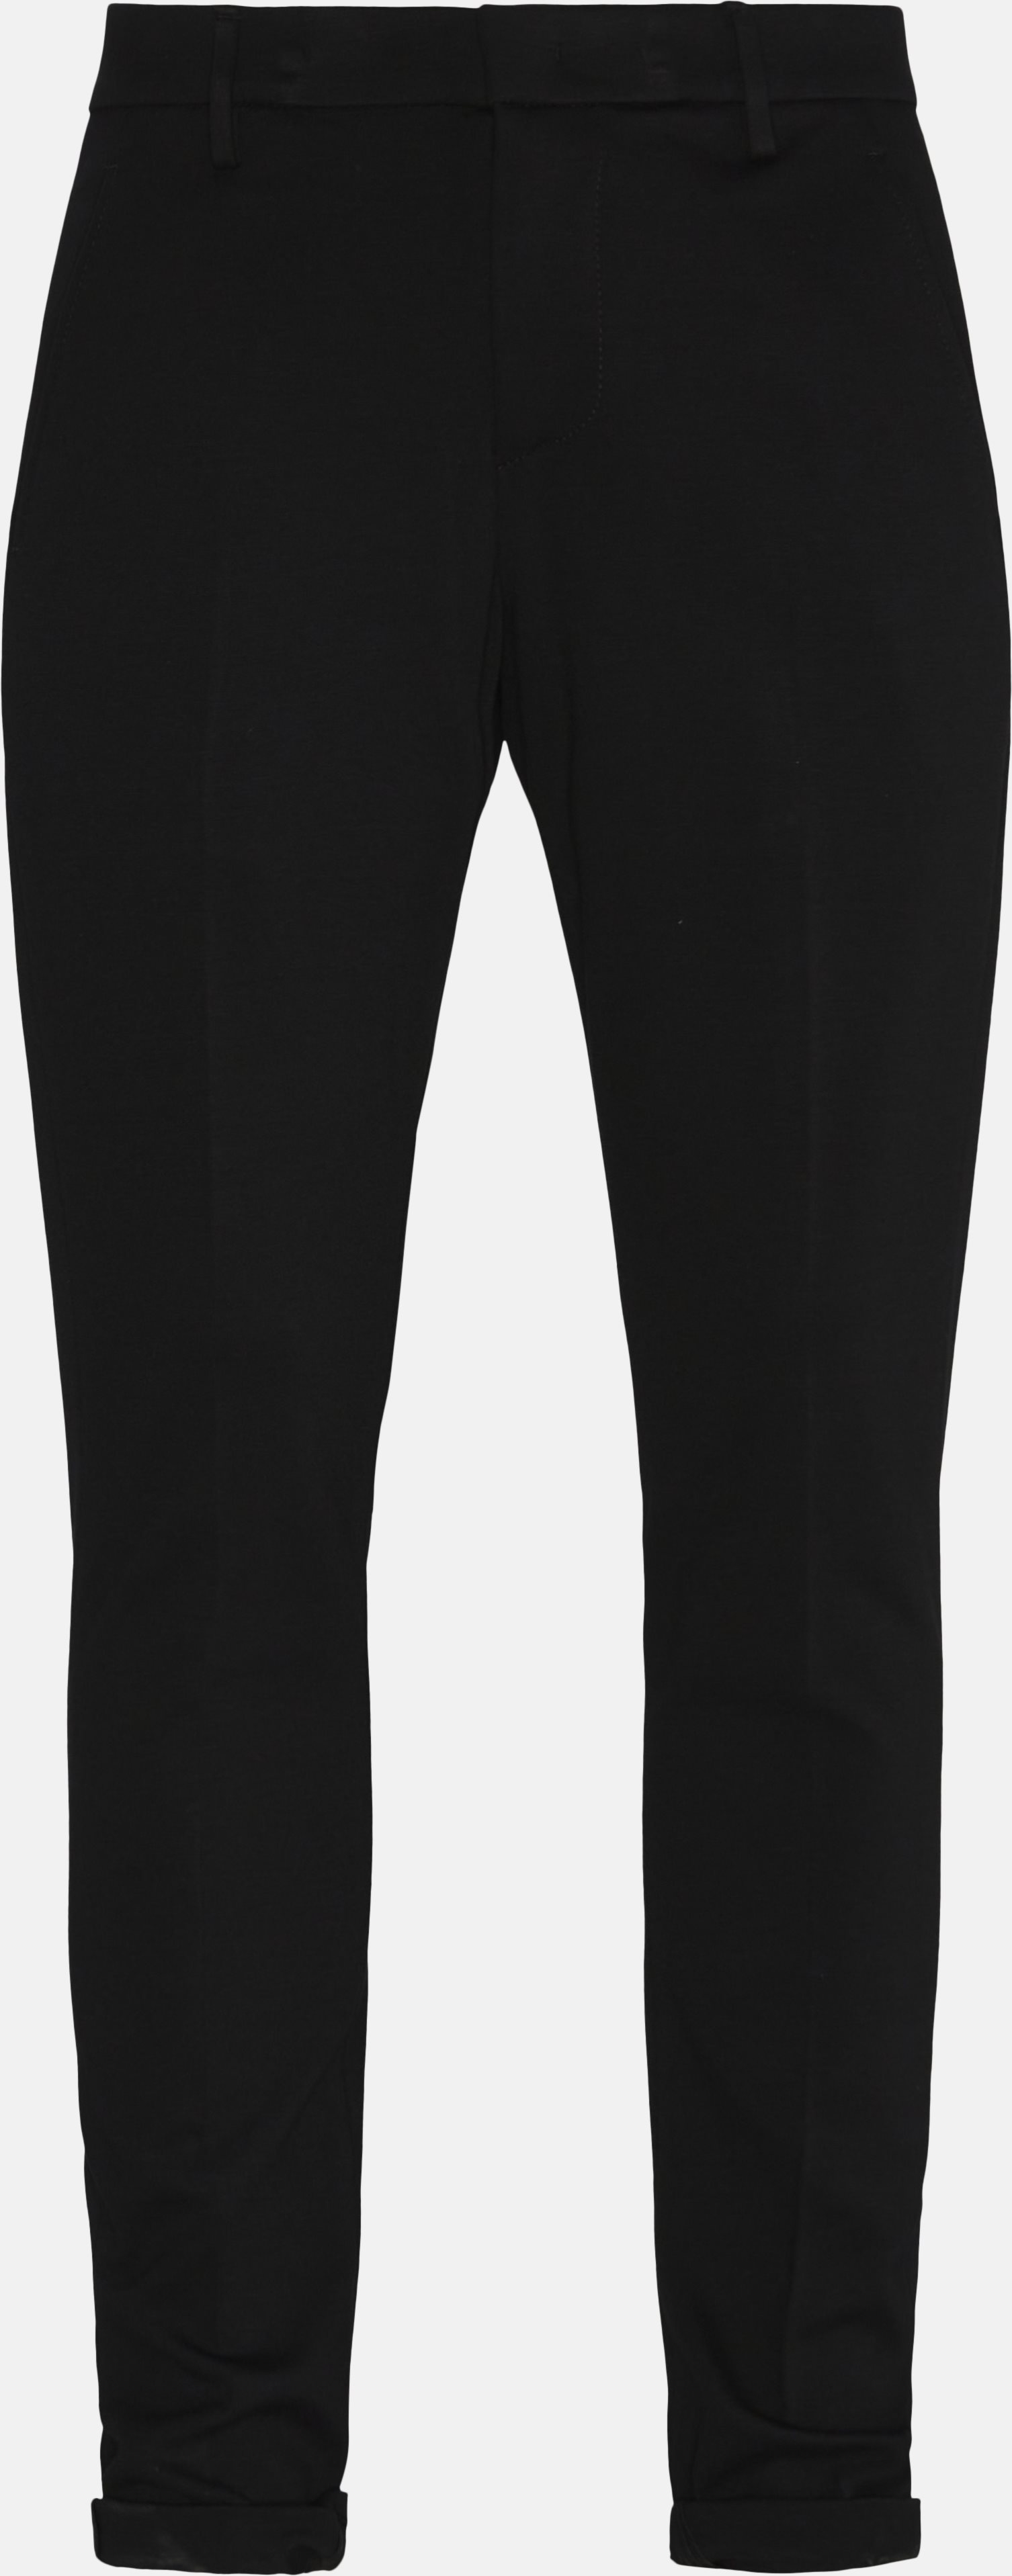 Comfort Pants - Bukser - Slim - Sort